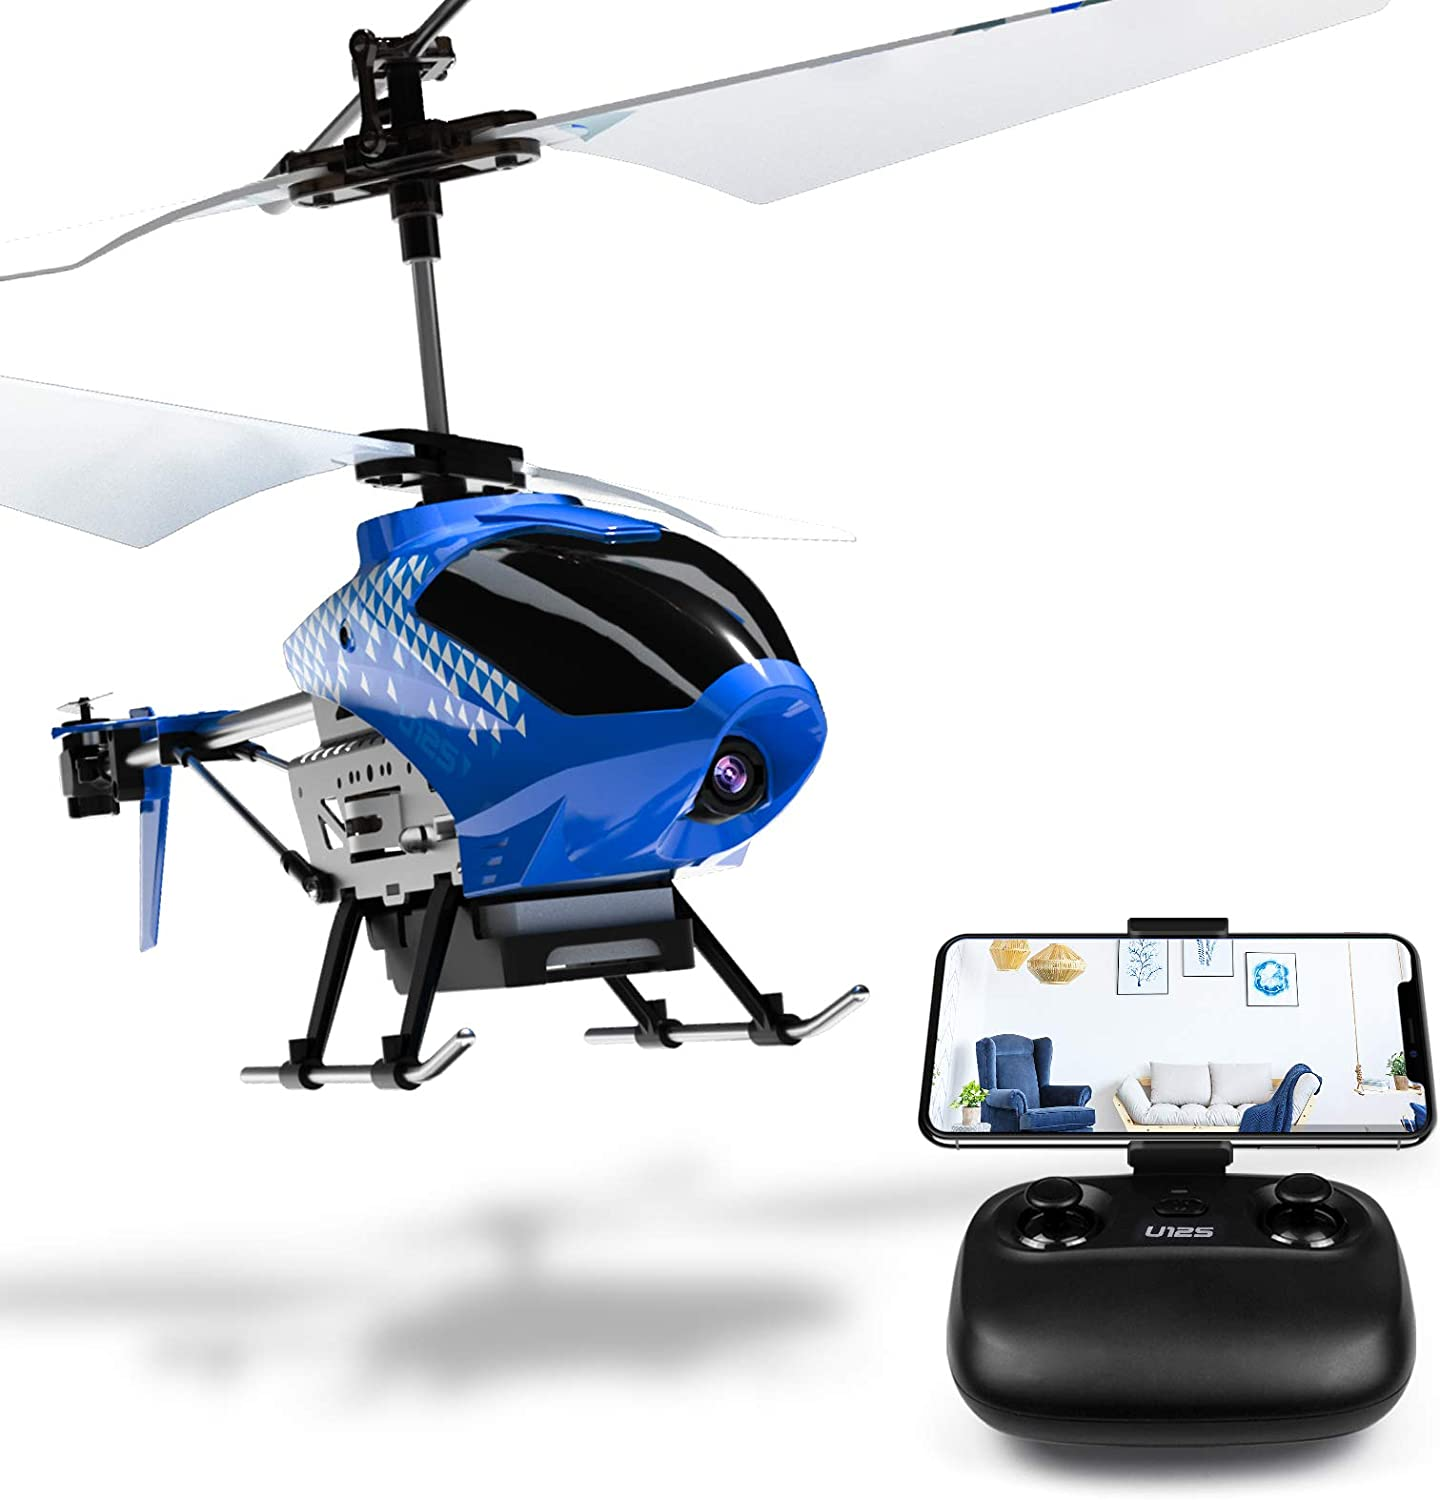 Amazon Com Cheerwing U12s Mini Rc Helicopter With Camera Remote Control Helicopter For Kids And Adults Toys Games